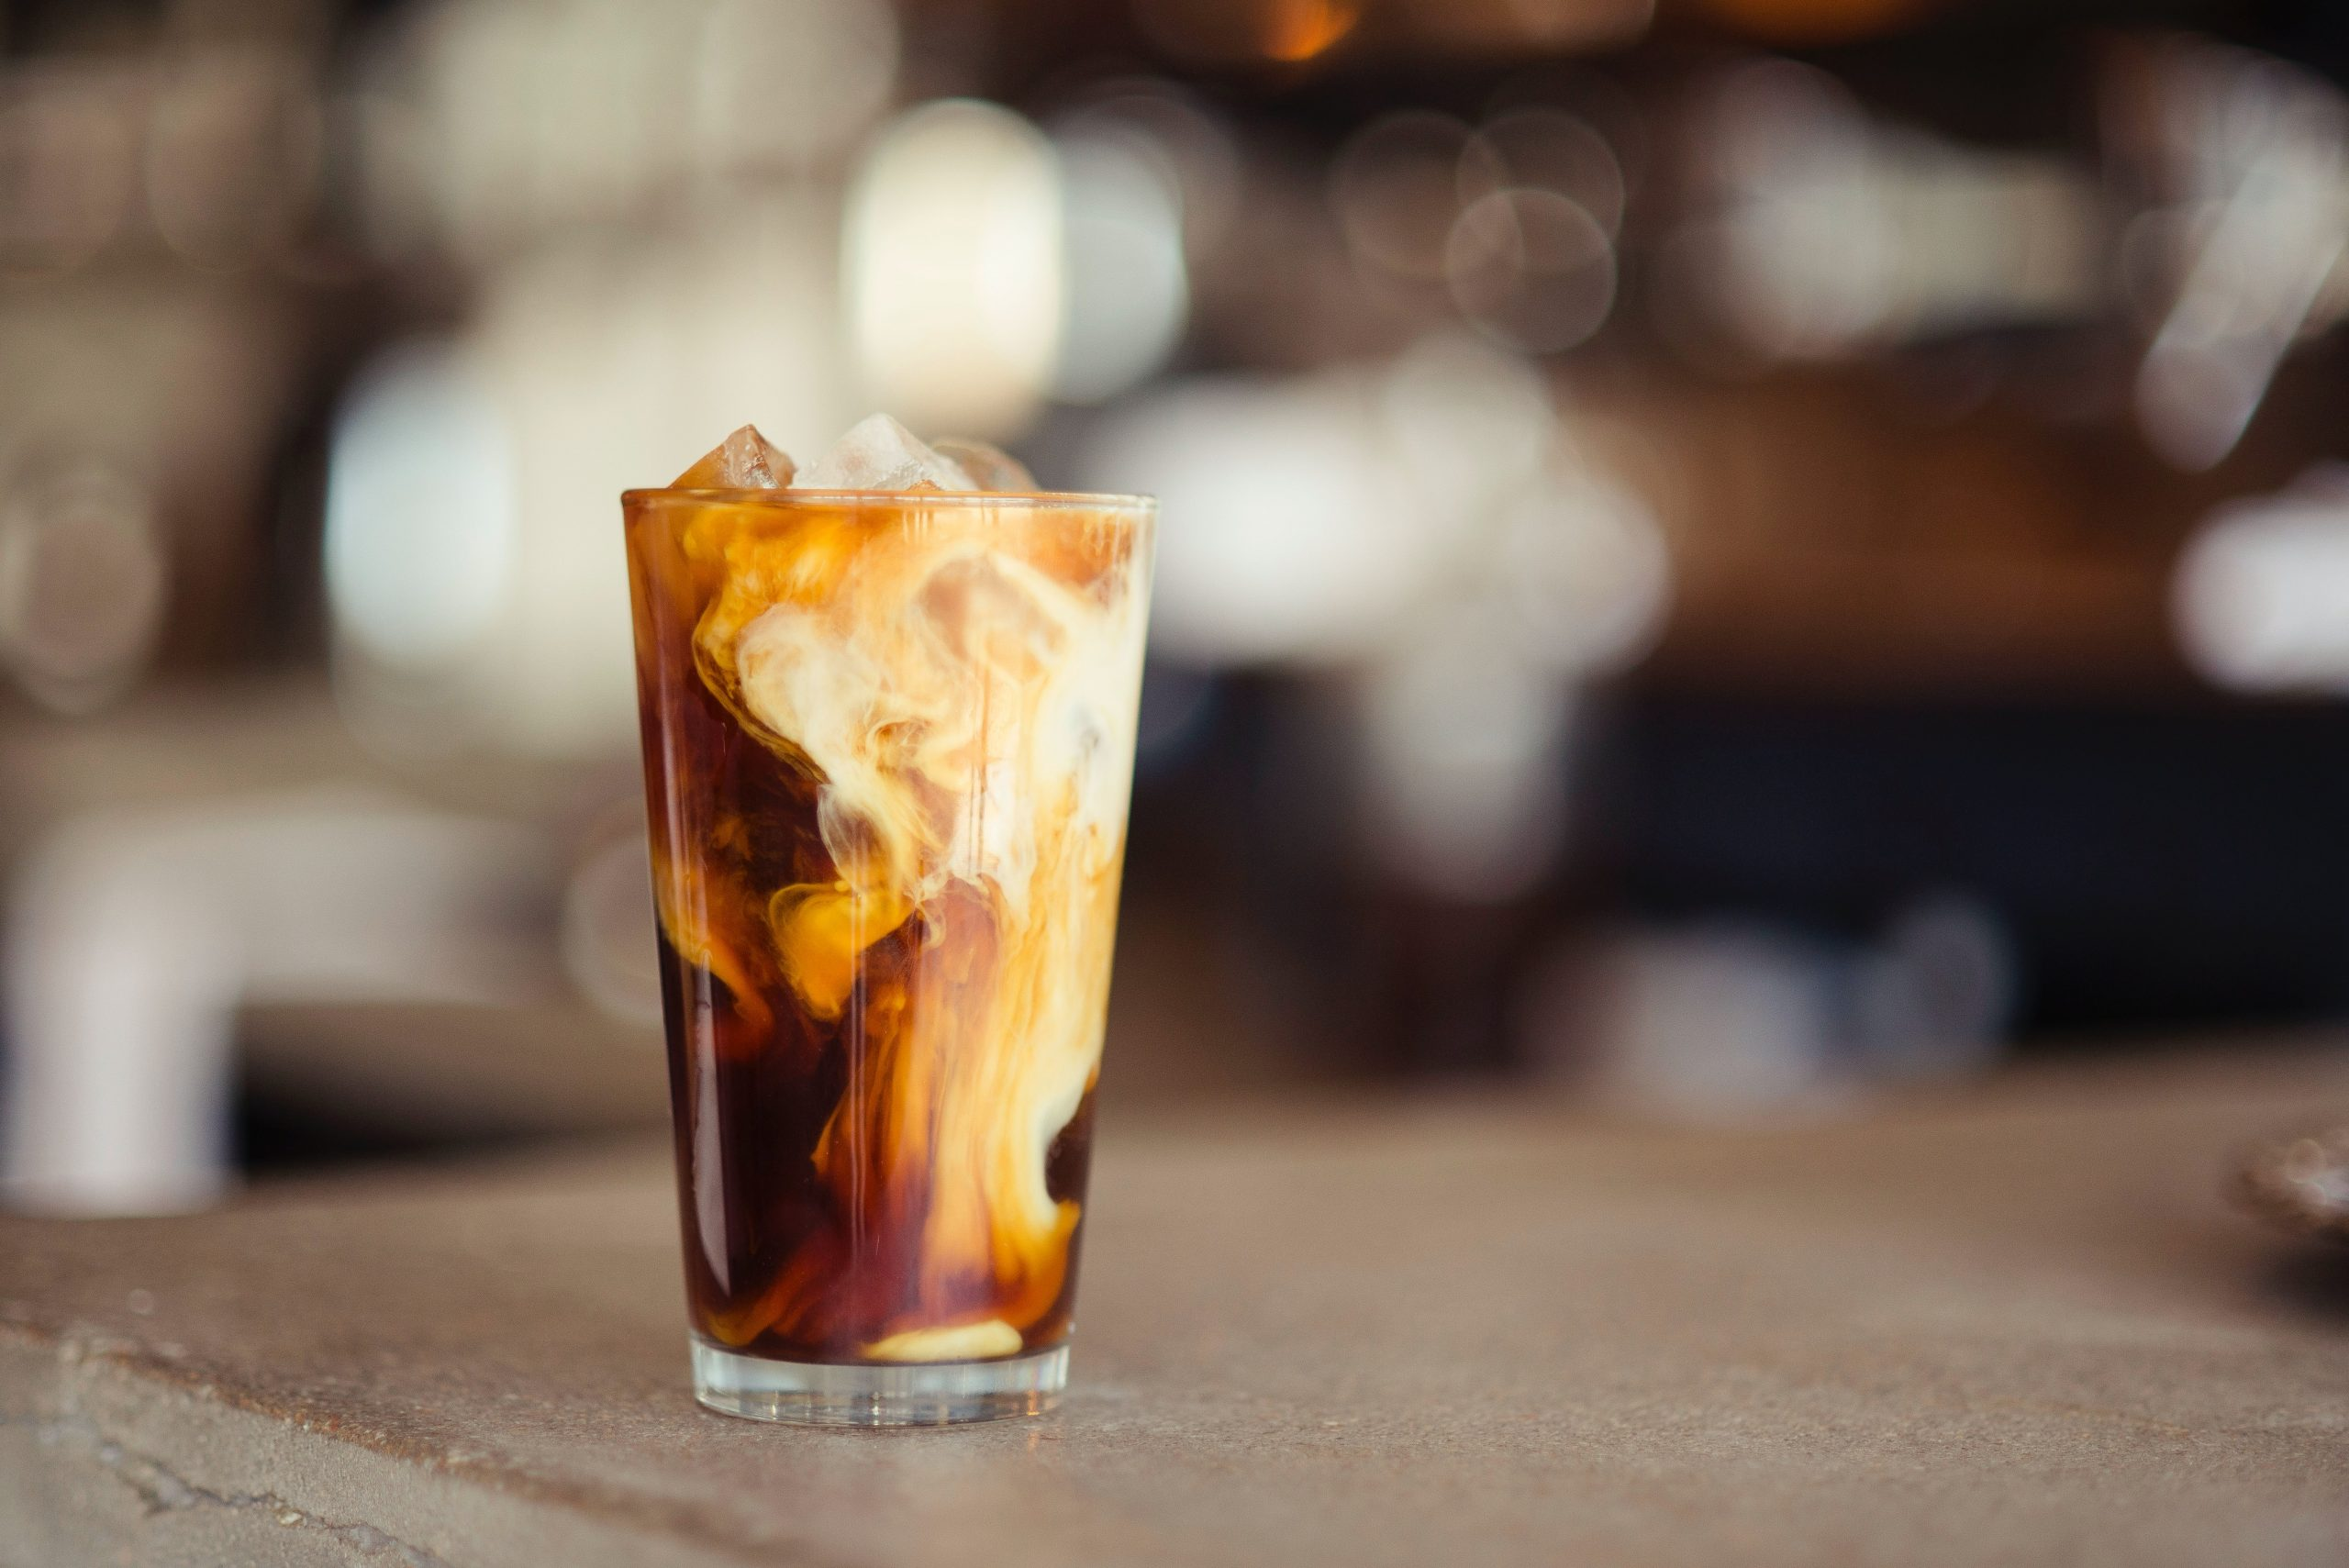 How You Can Make Cold Brew Coffee At Home